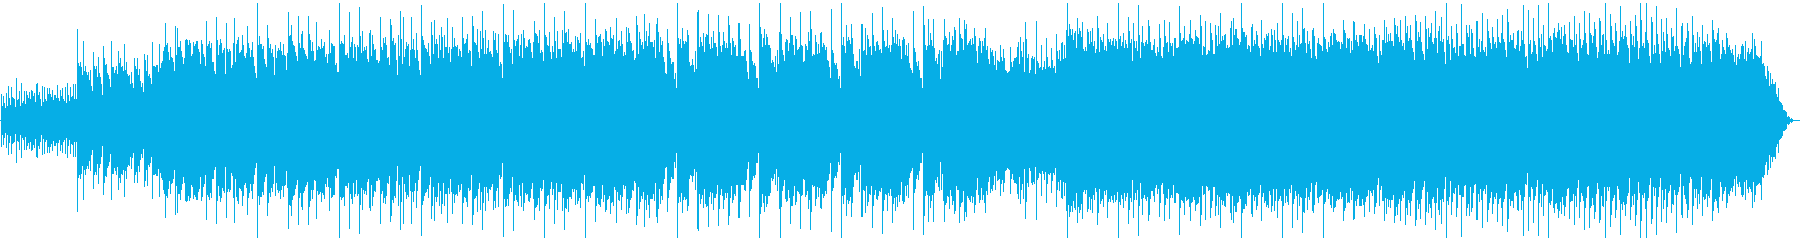 BGM with a sense of tension's reproduced waveform